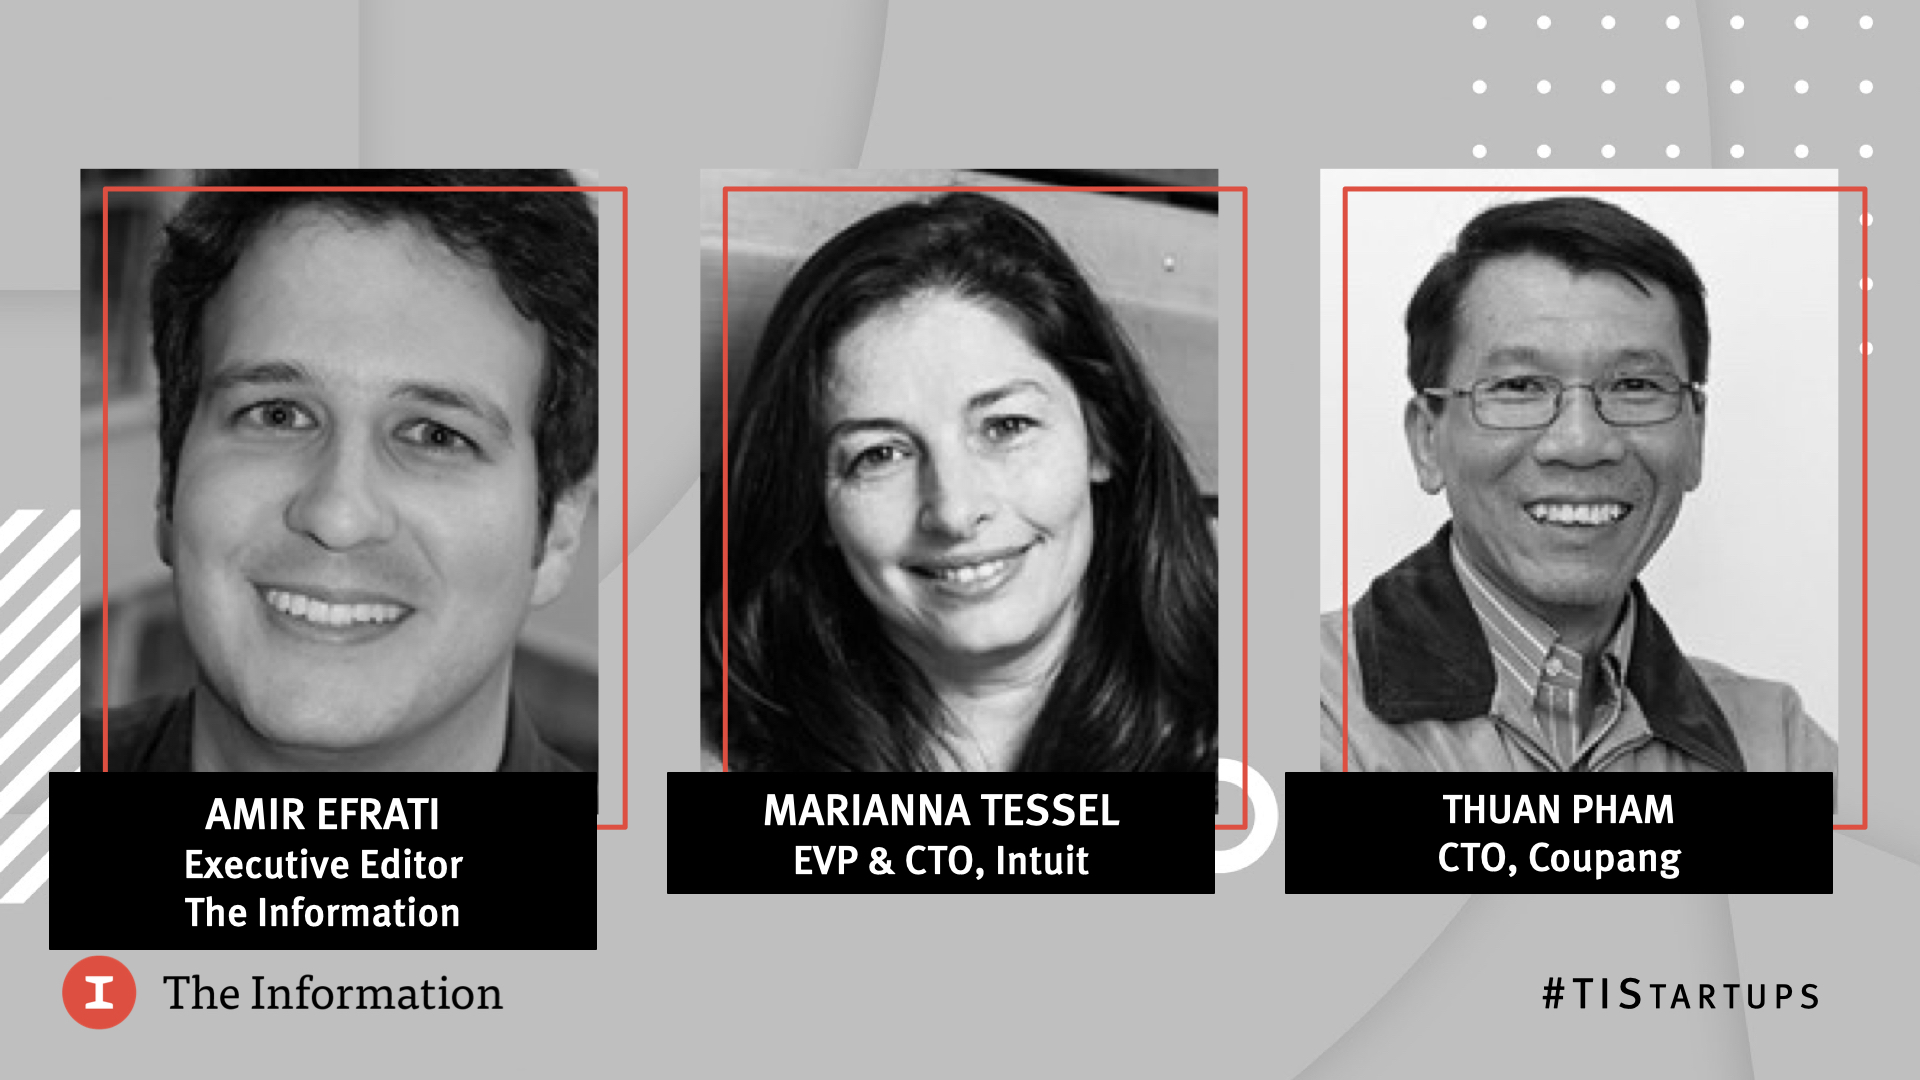 Future of Startups 2021 - Thuan Pham, CTO, Coupang & Marianna Tessel, EVP & CTO, Intuit in conversation with Amir Efrati, Executive Editor, The Information